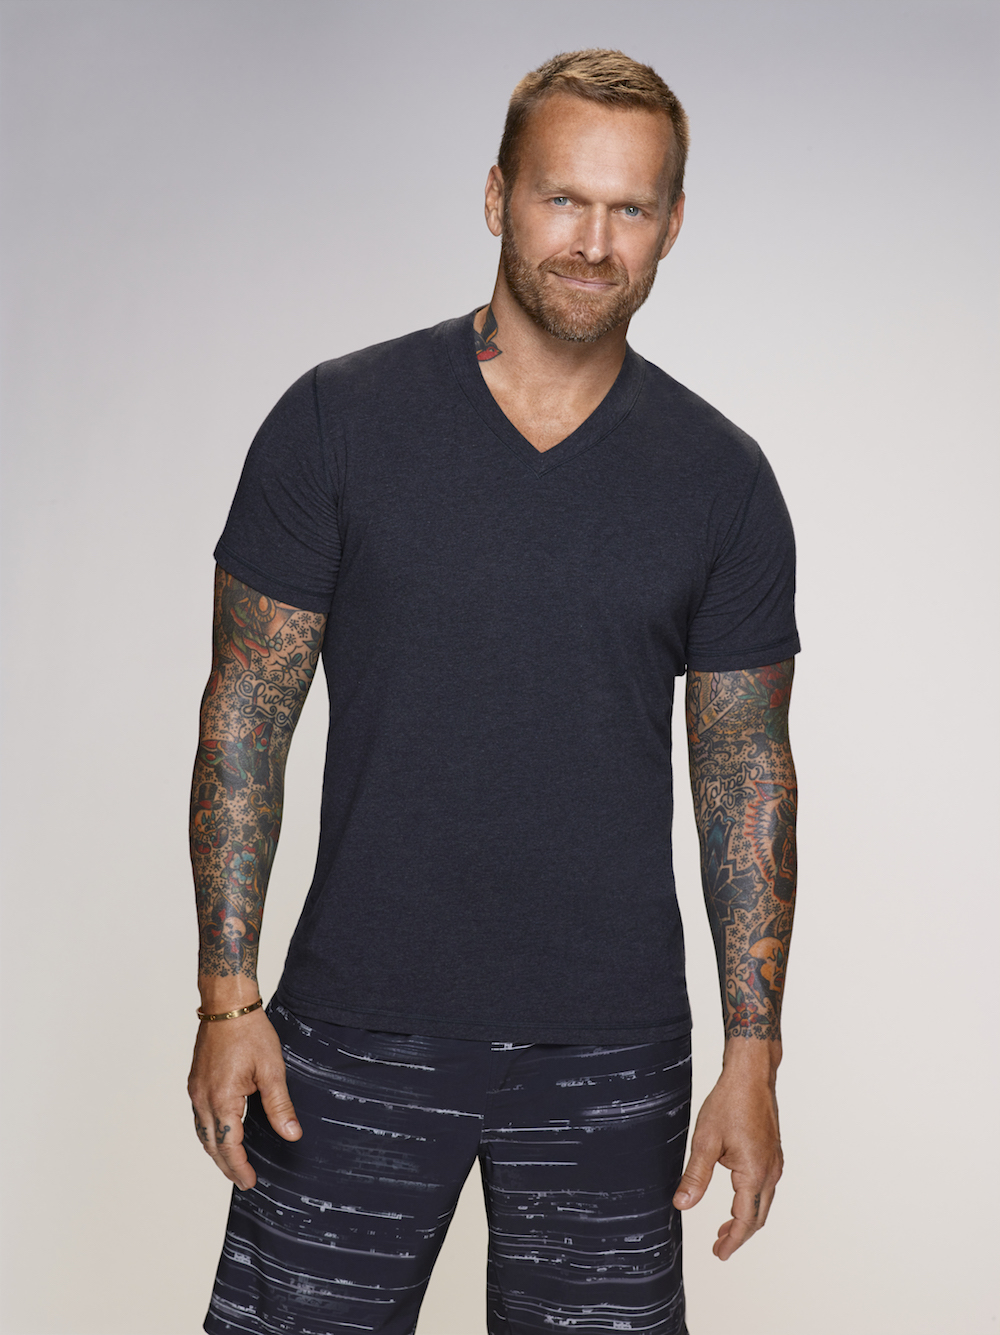 Bob Harper (Photo by: Chris Haston/NBC/NBCU Photo Bank via Getty Images)